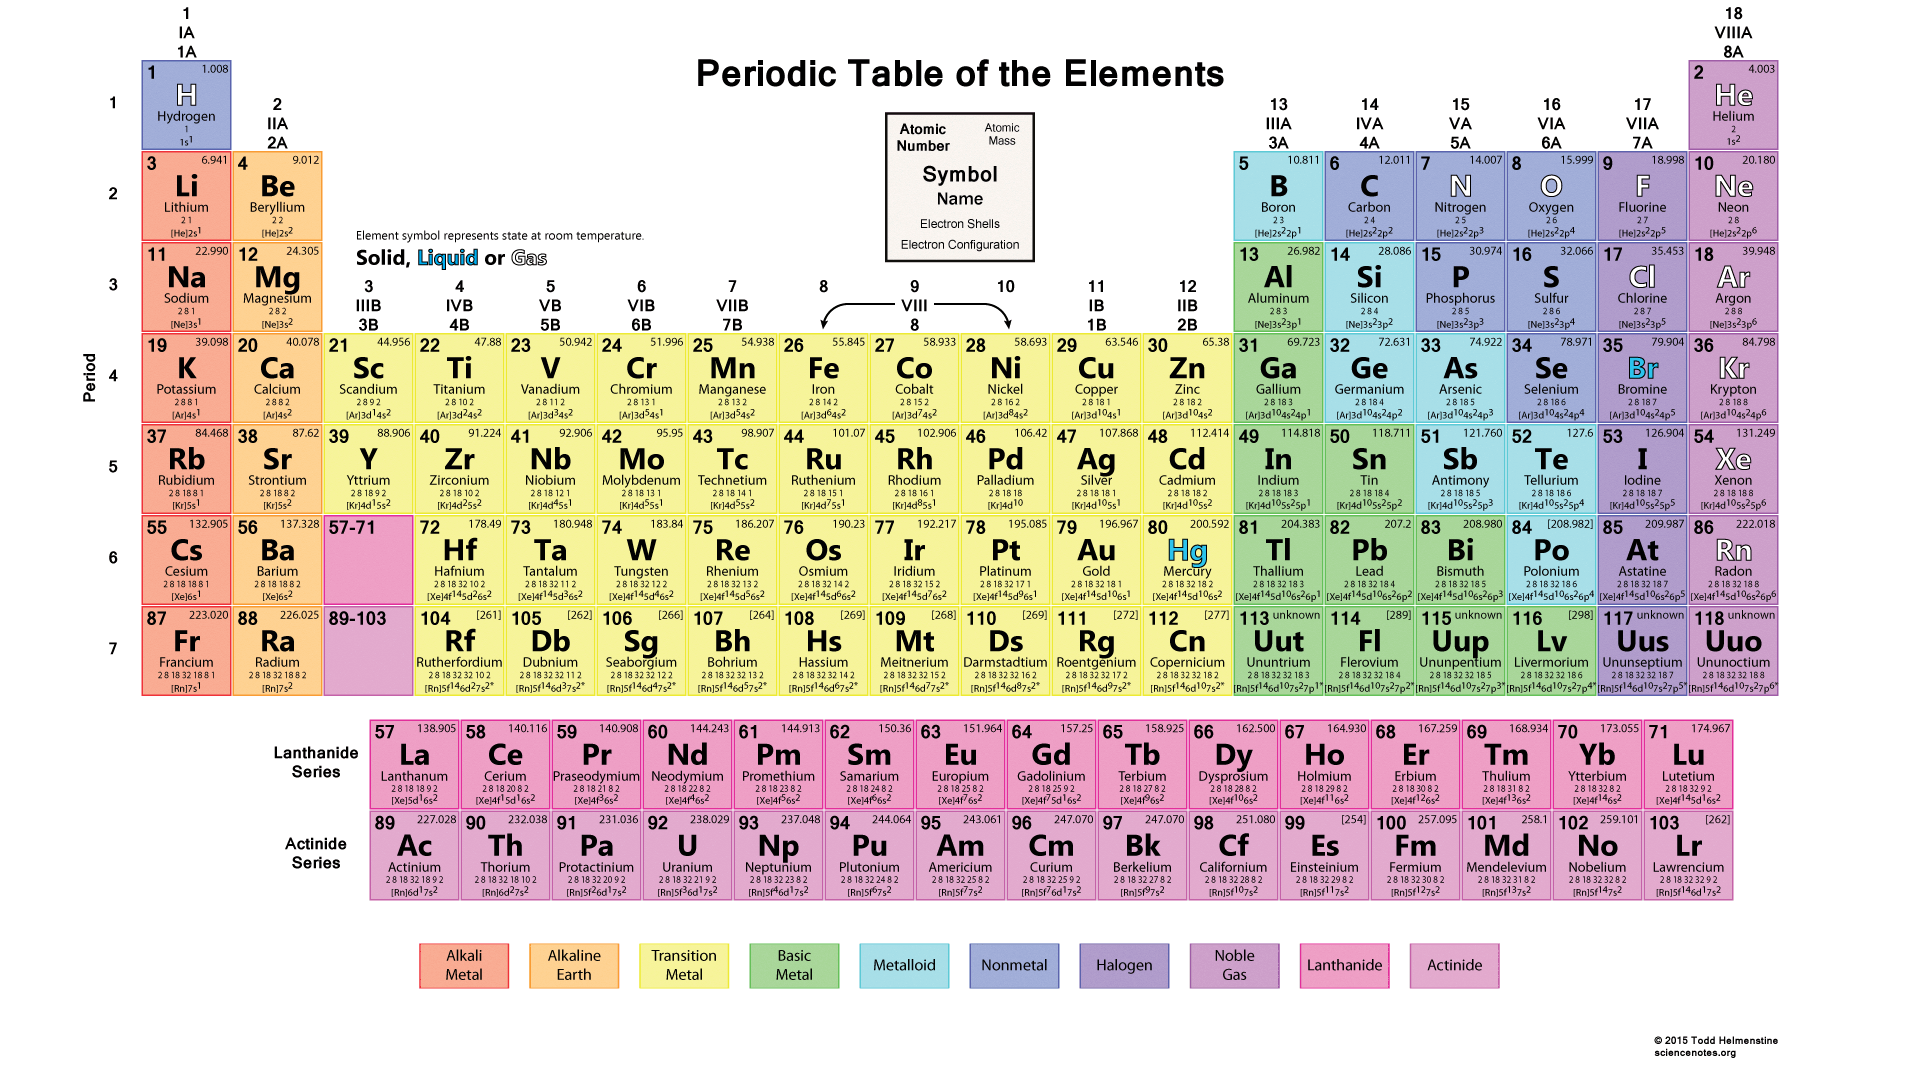 Printable periodic table of elements with names idealstalist printable urtaz Image collections